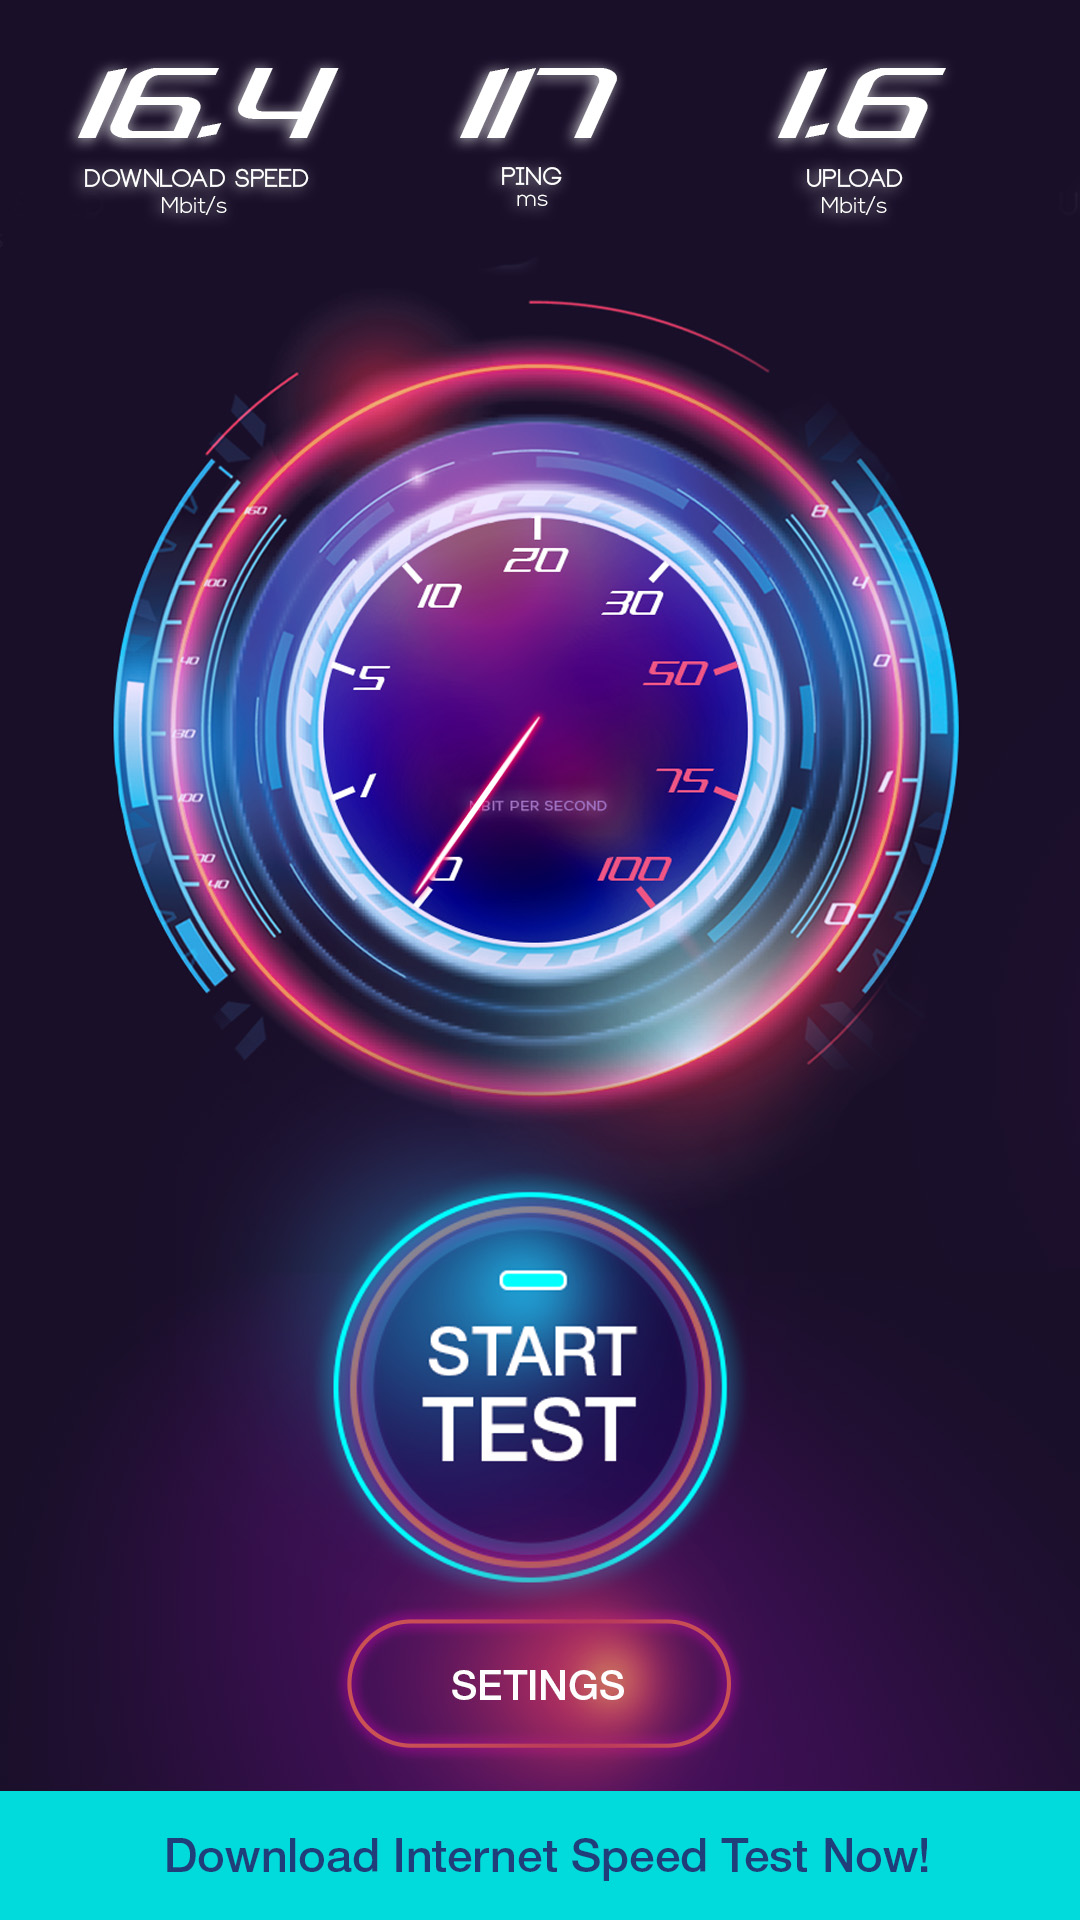 Internet Speed Test: Troubleshoot Your Internet Connection ...